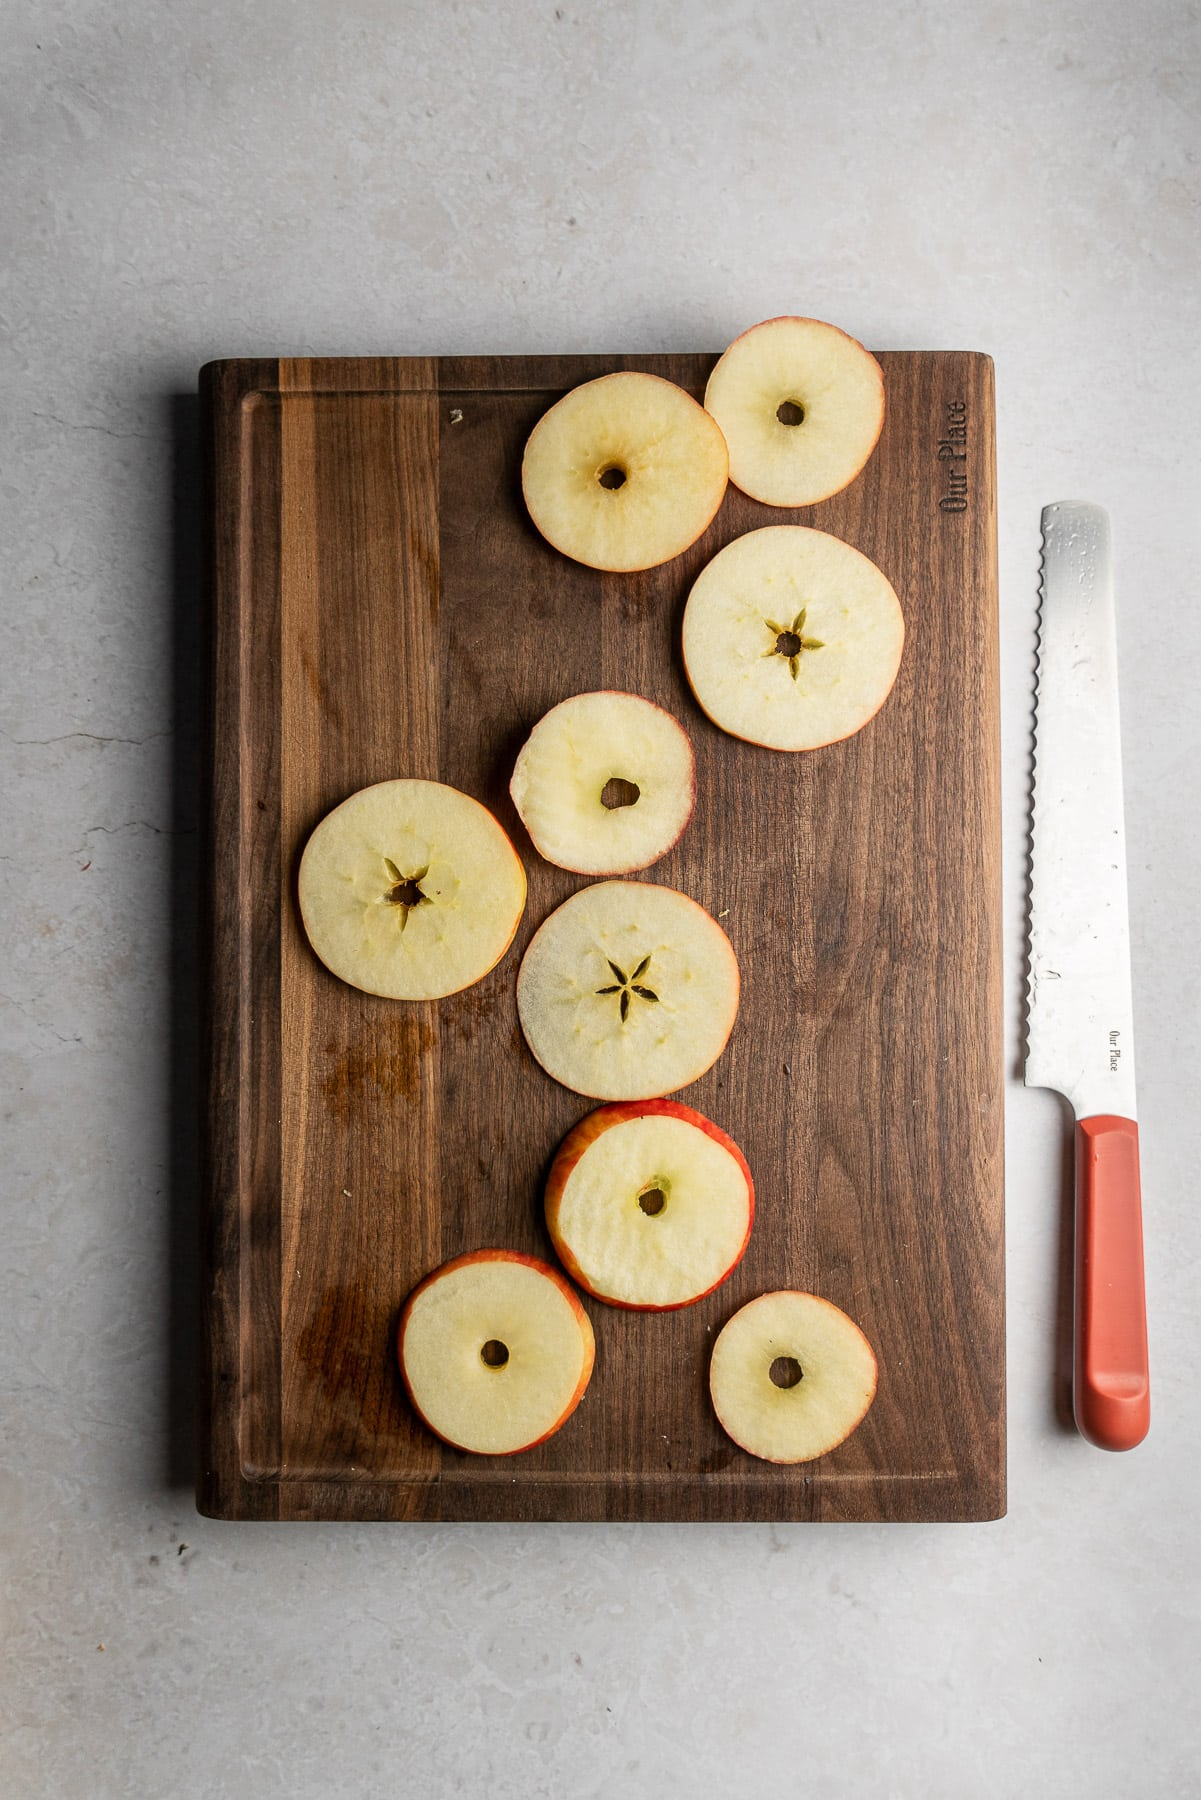 honey crisp apples cut into rings with the core taken out